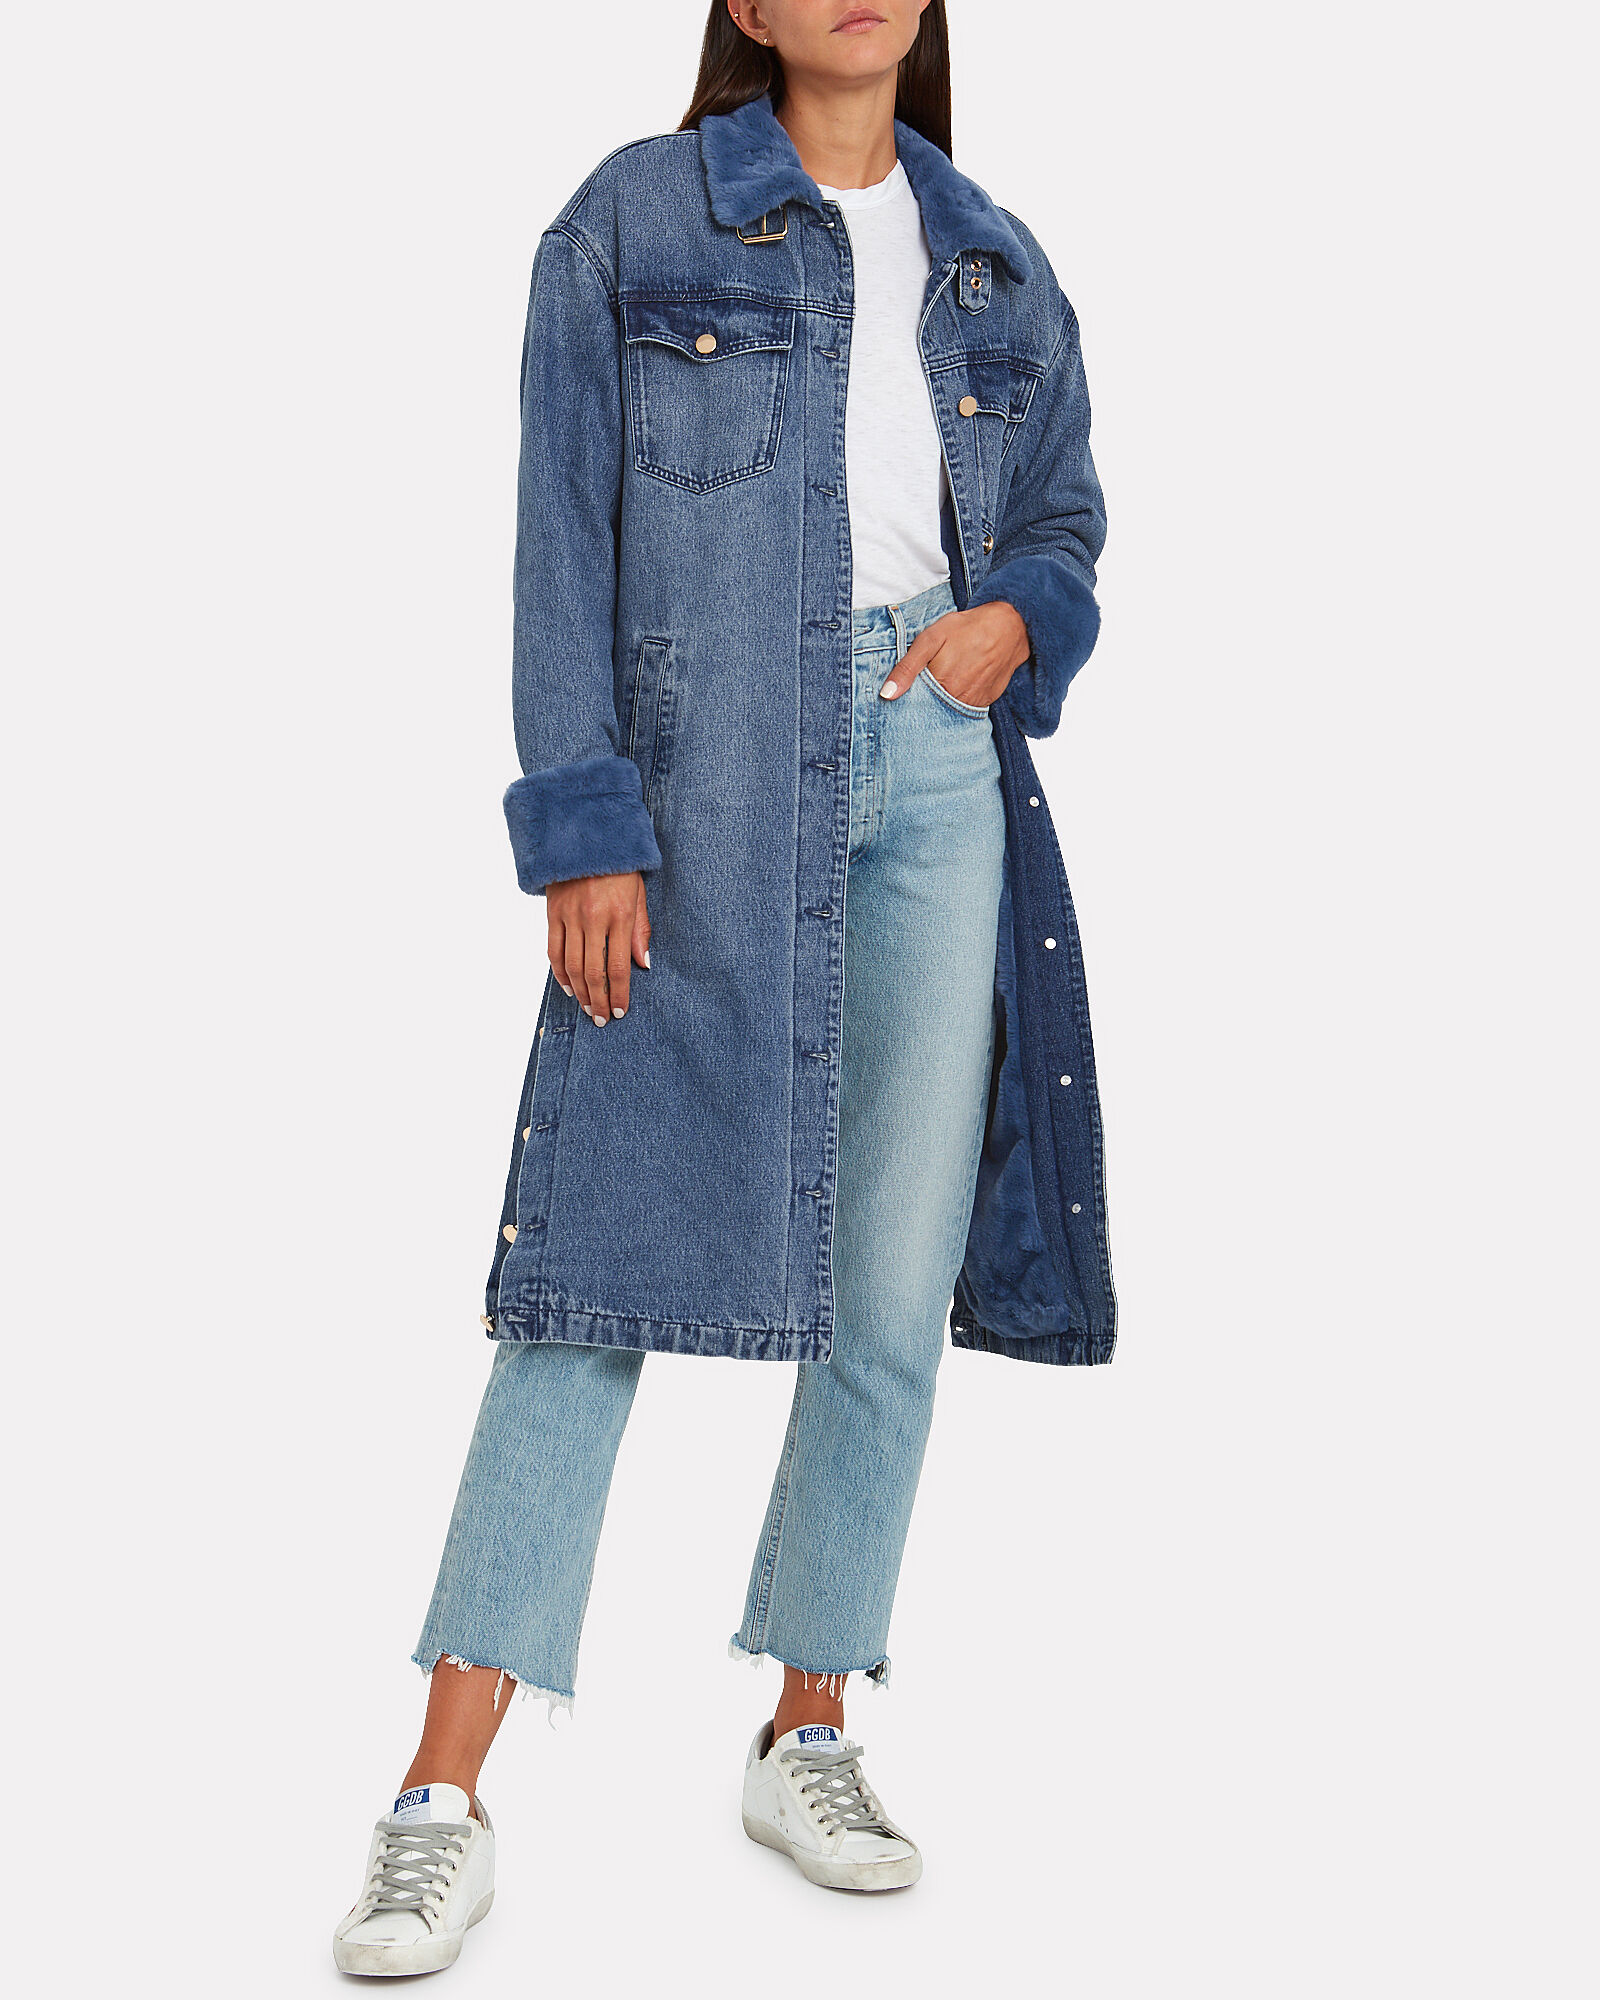 Malou Faux Fur-Trimmed Denim Coat, BLUE-MED, hi-res